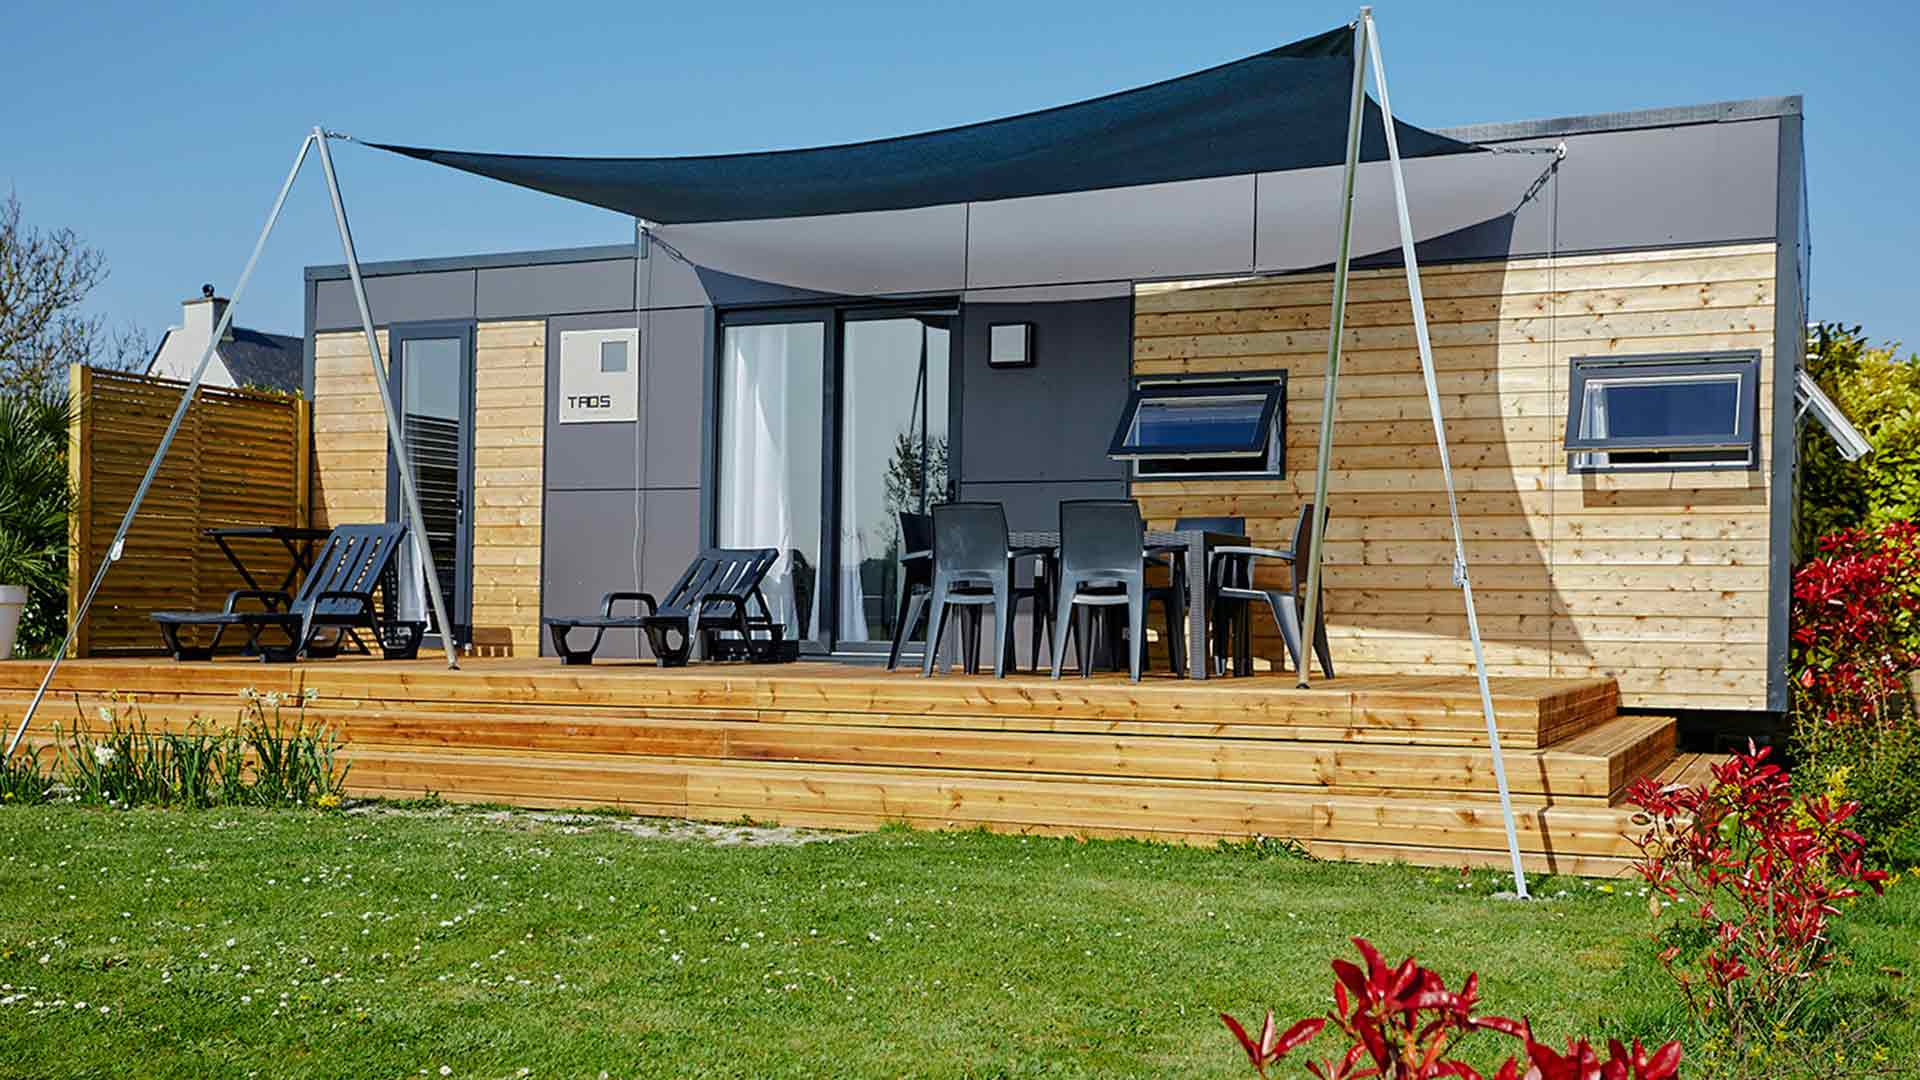 Camping espagne location mobil home camping corse vacances directes